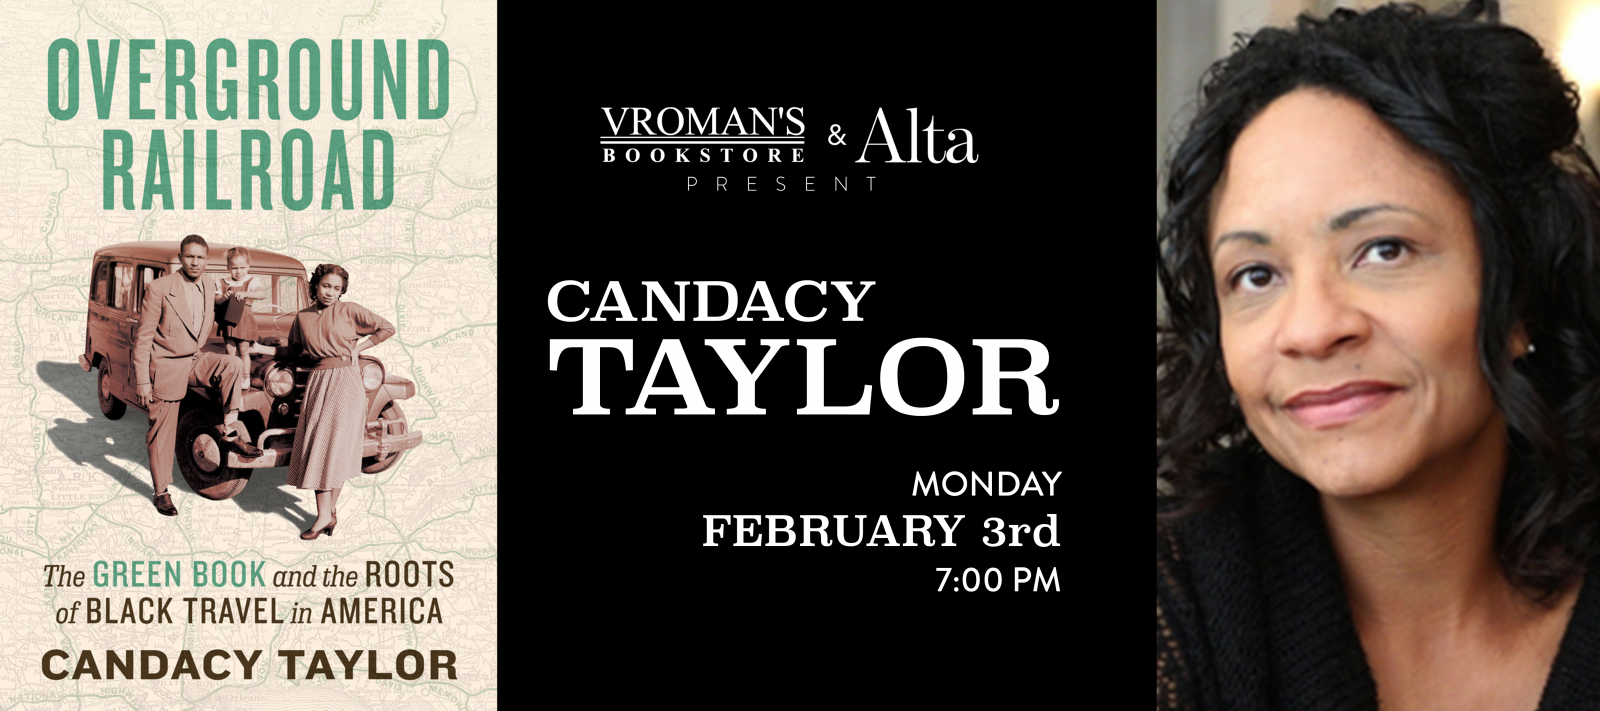 Candacy Taylor book signing on  Monday, February 3,at 7pm